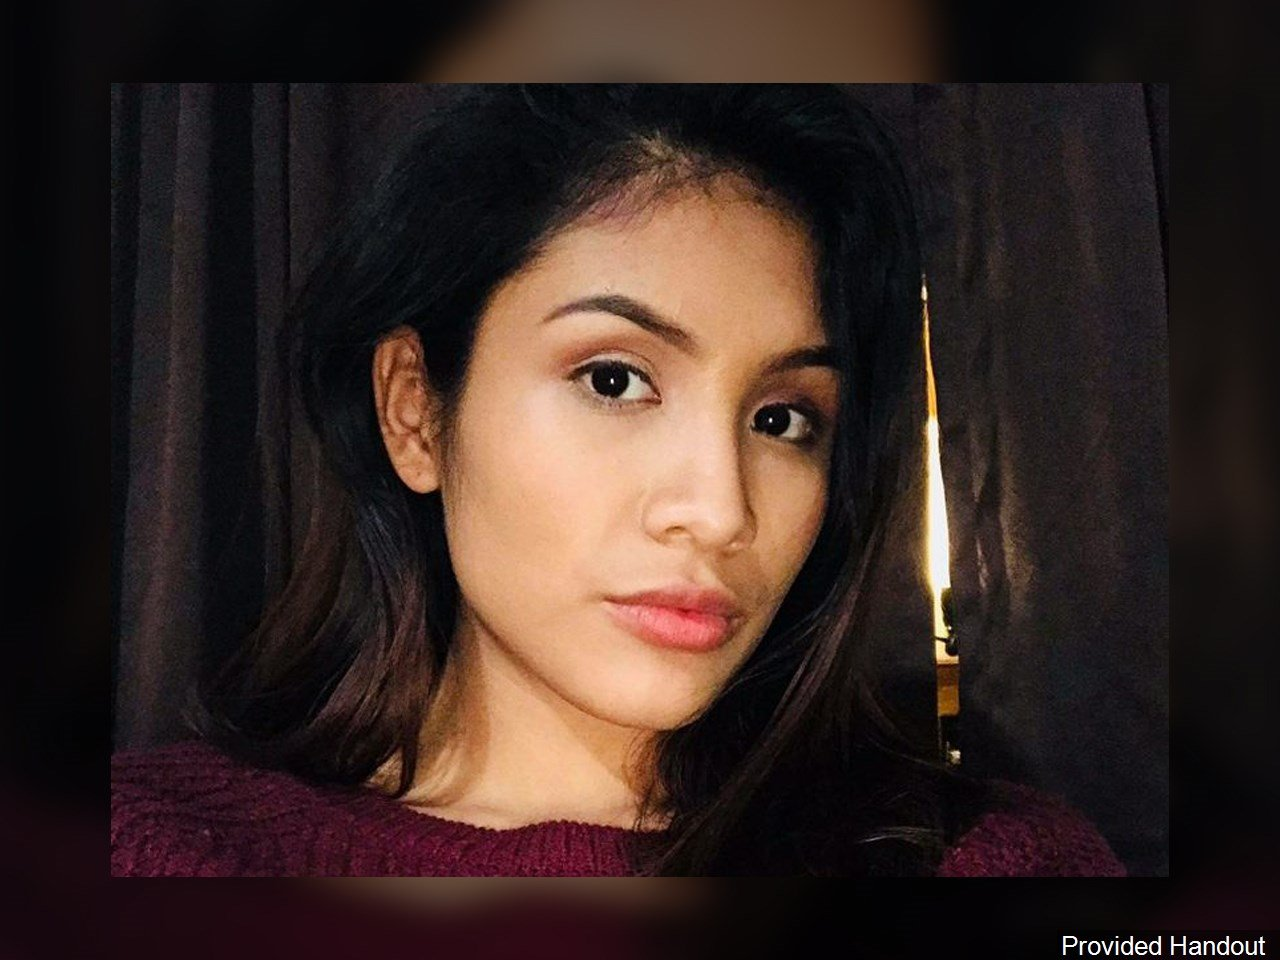 Pregnant US Teen Killed, Baby Taken From Womb